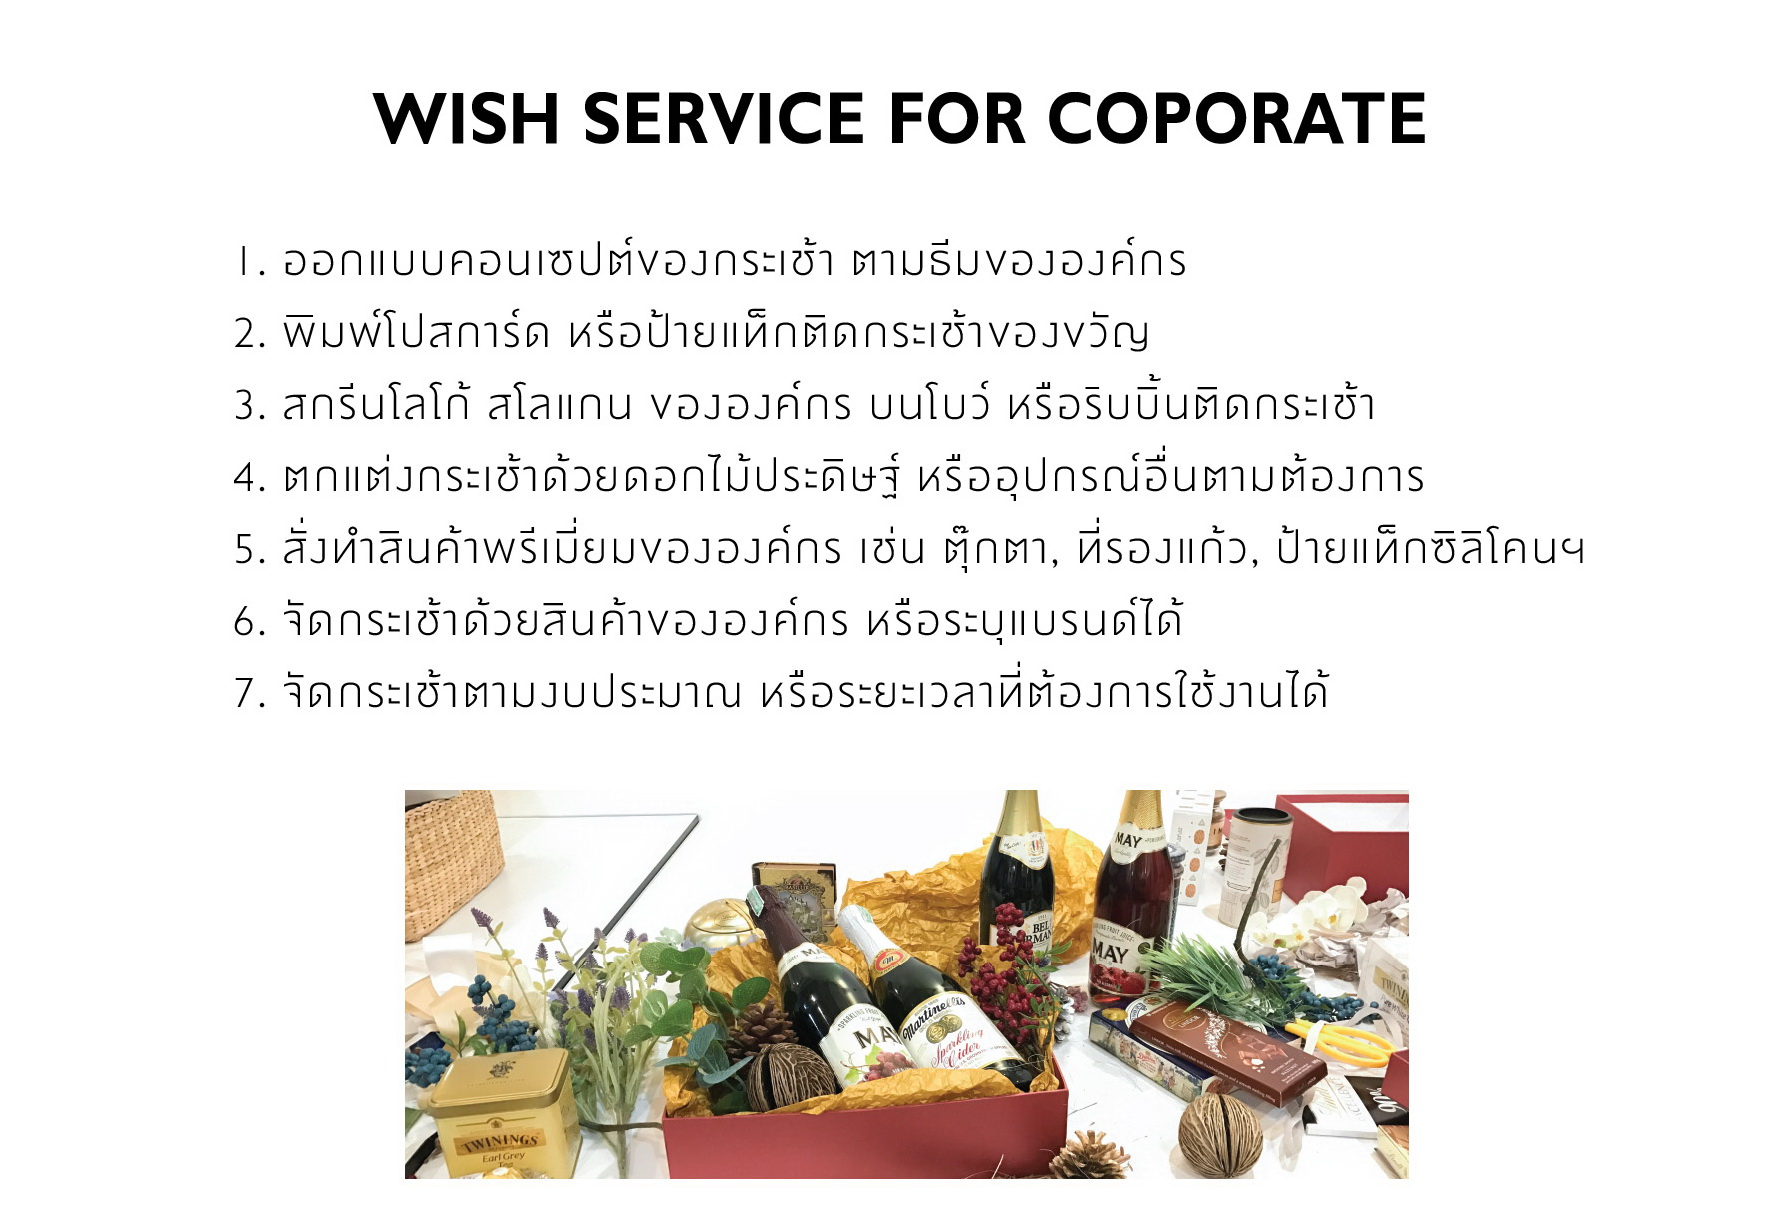 WISH for Corporate